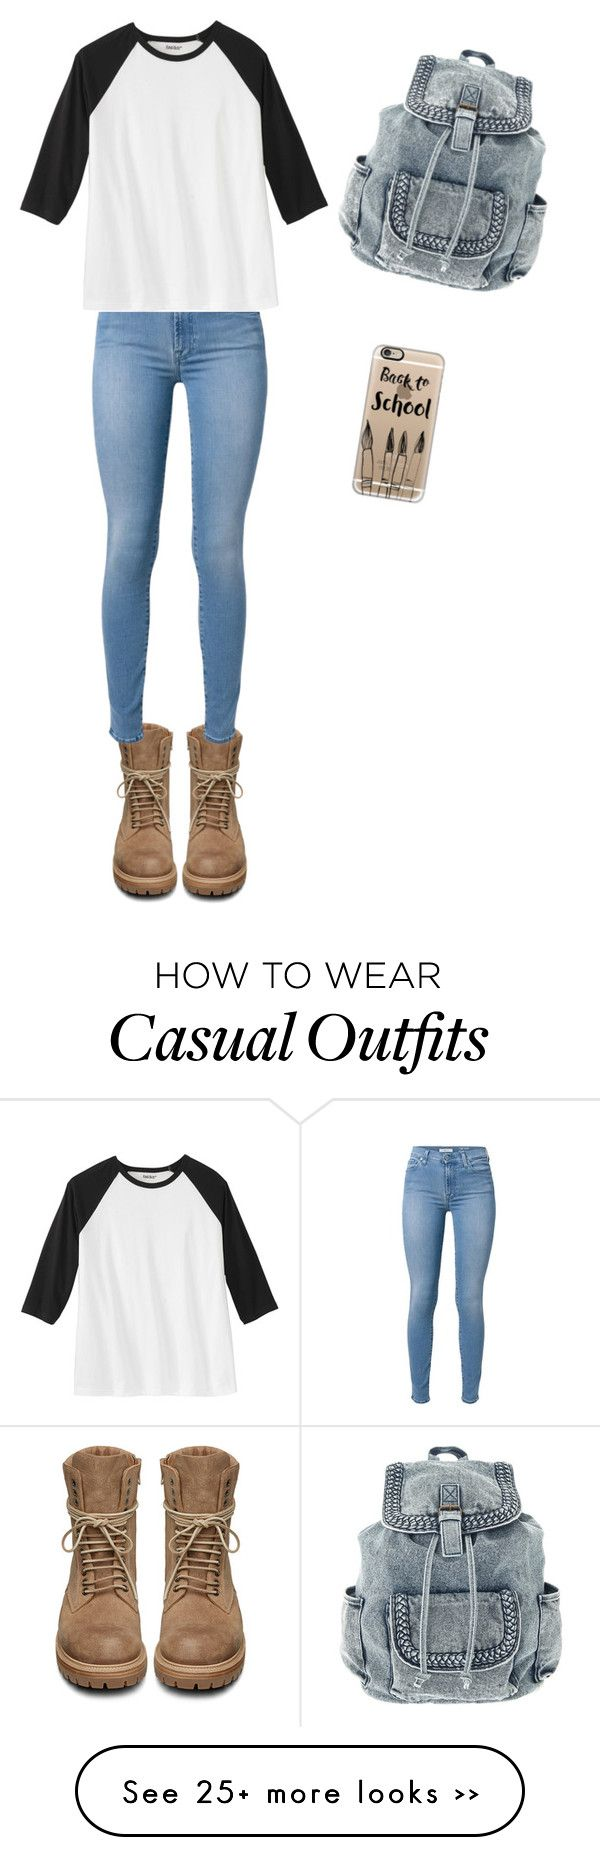 """""""Casual school"""" by chlofthesclan on Polyvore featuring Rick Owens, 7 For All Mankind and Casetify"""